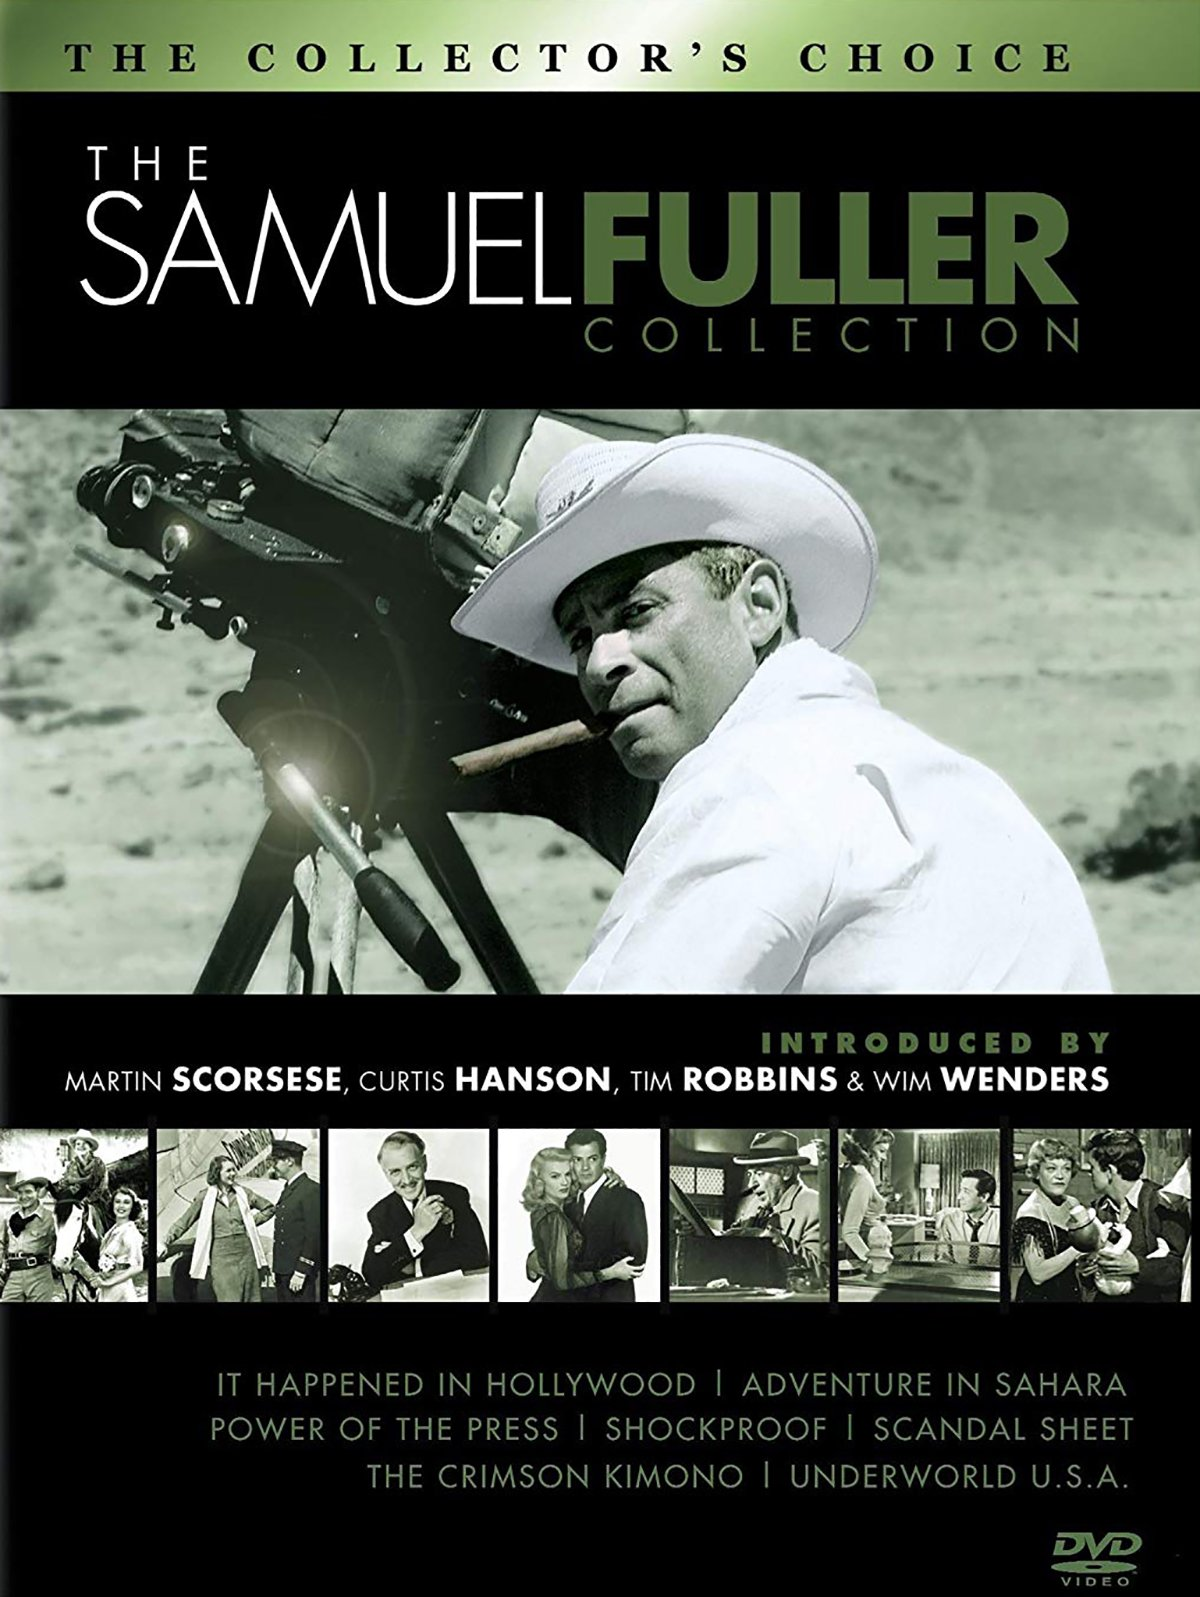 The Samuel Fuller Collection: The Collector's Choice